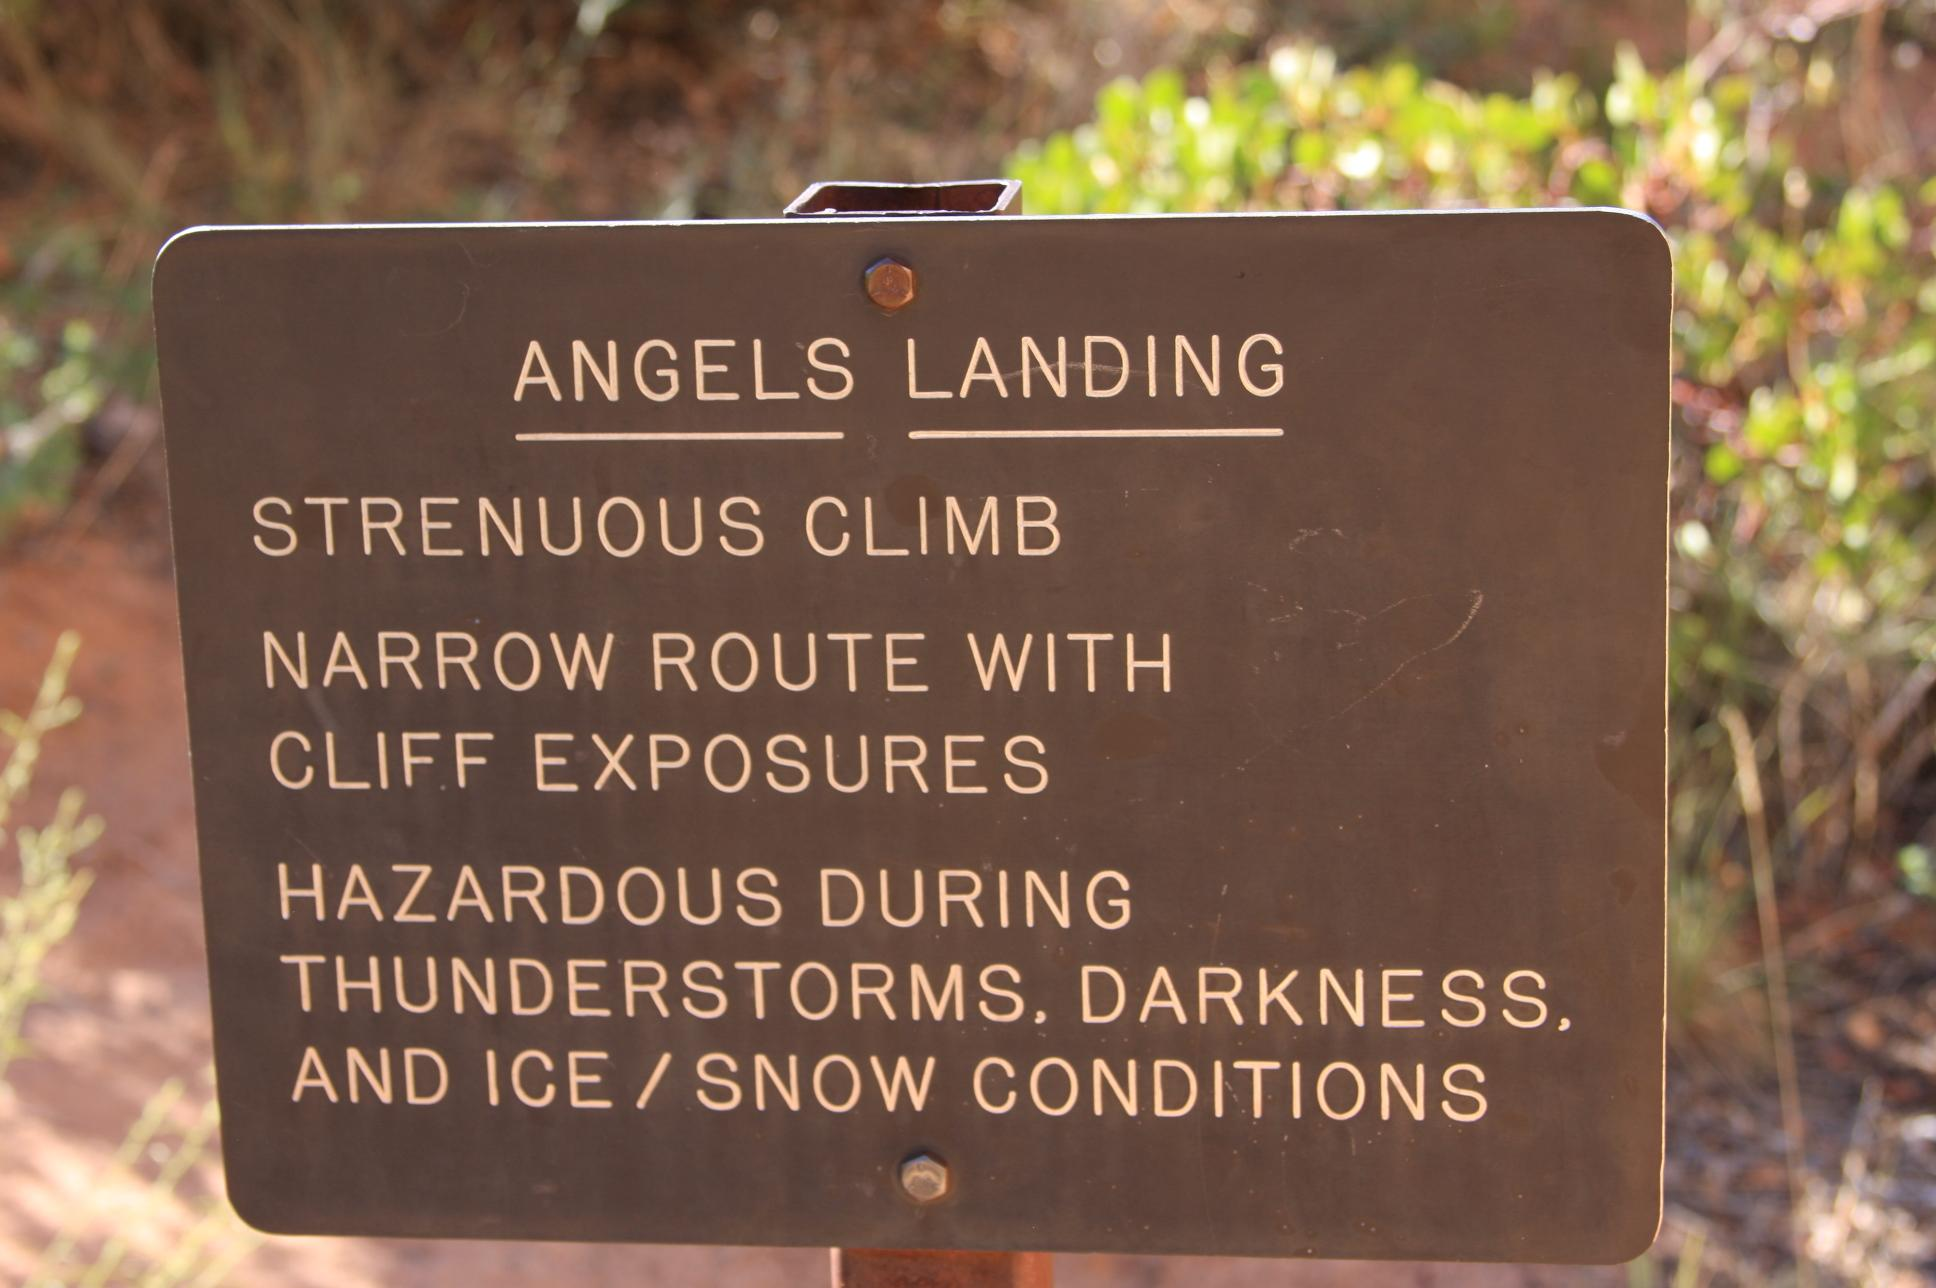 Angels Landing - why all the warnings?